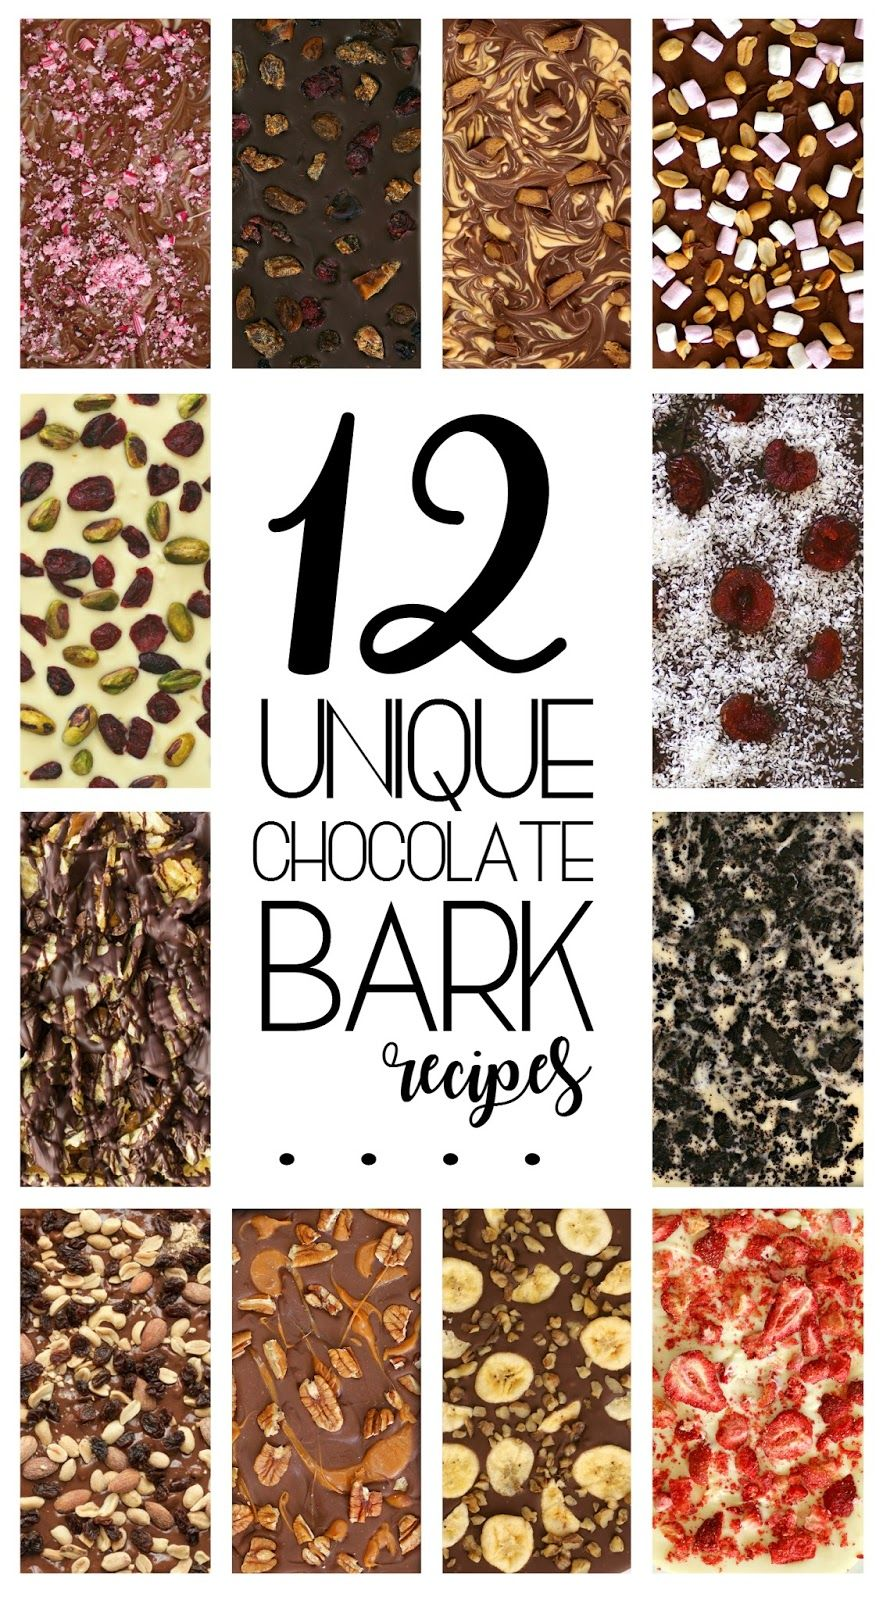 How to make chocolate bark candy xmas ideas xmas gifts and food 12 unique chocolate bark recipes for christmas gifting negle Image collections